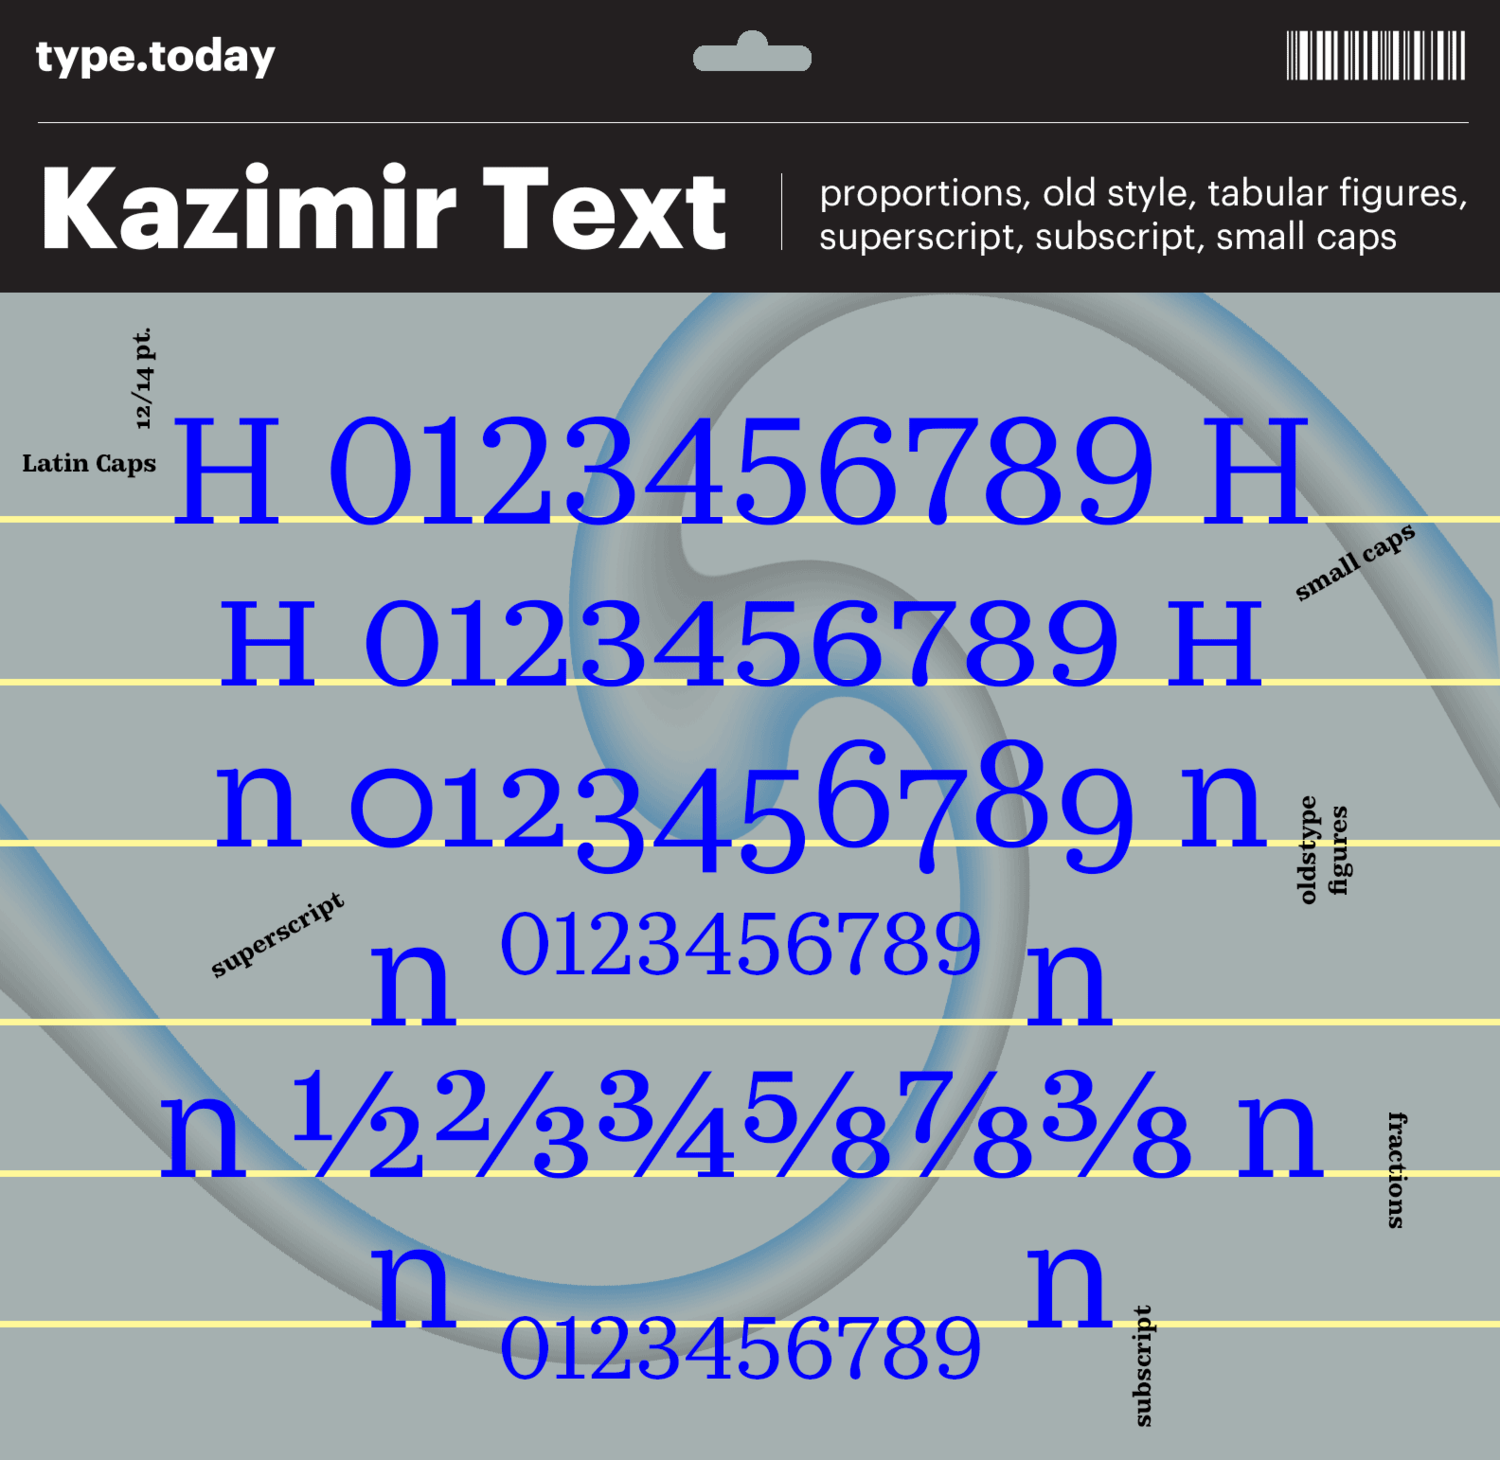 TT_KazimirText_Figures